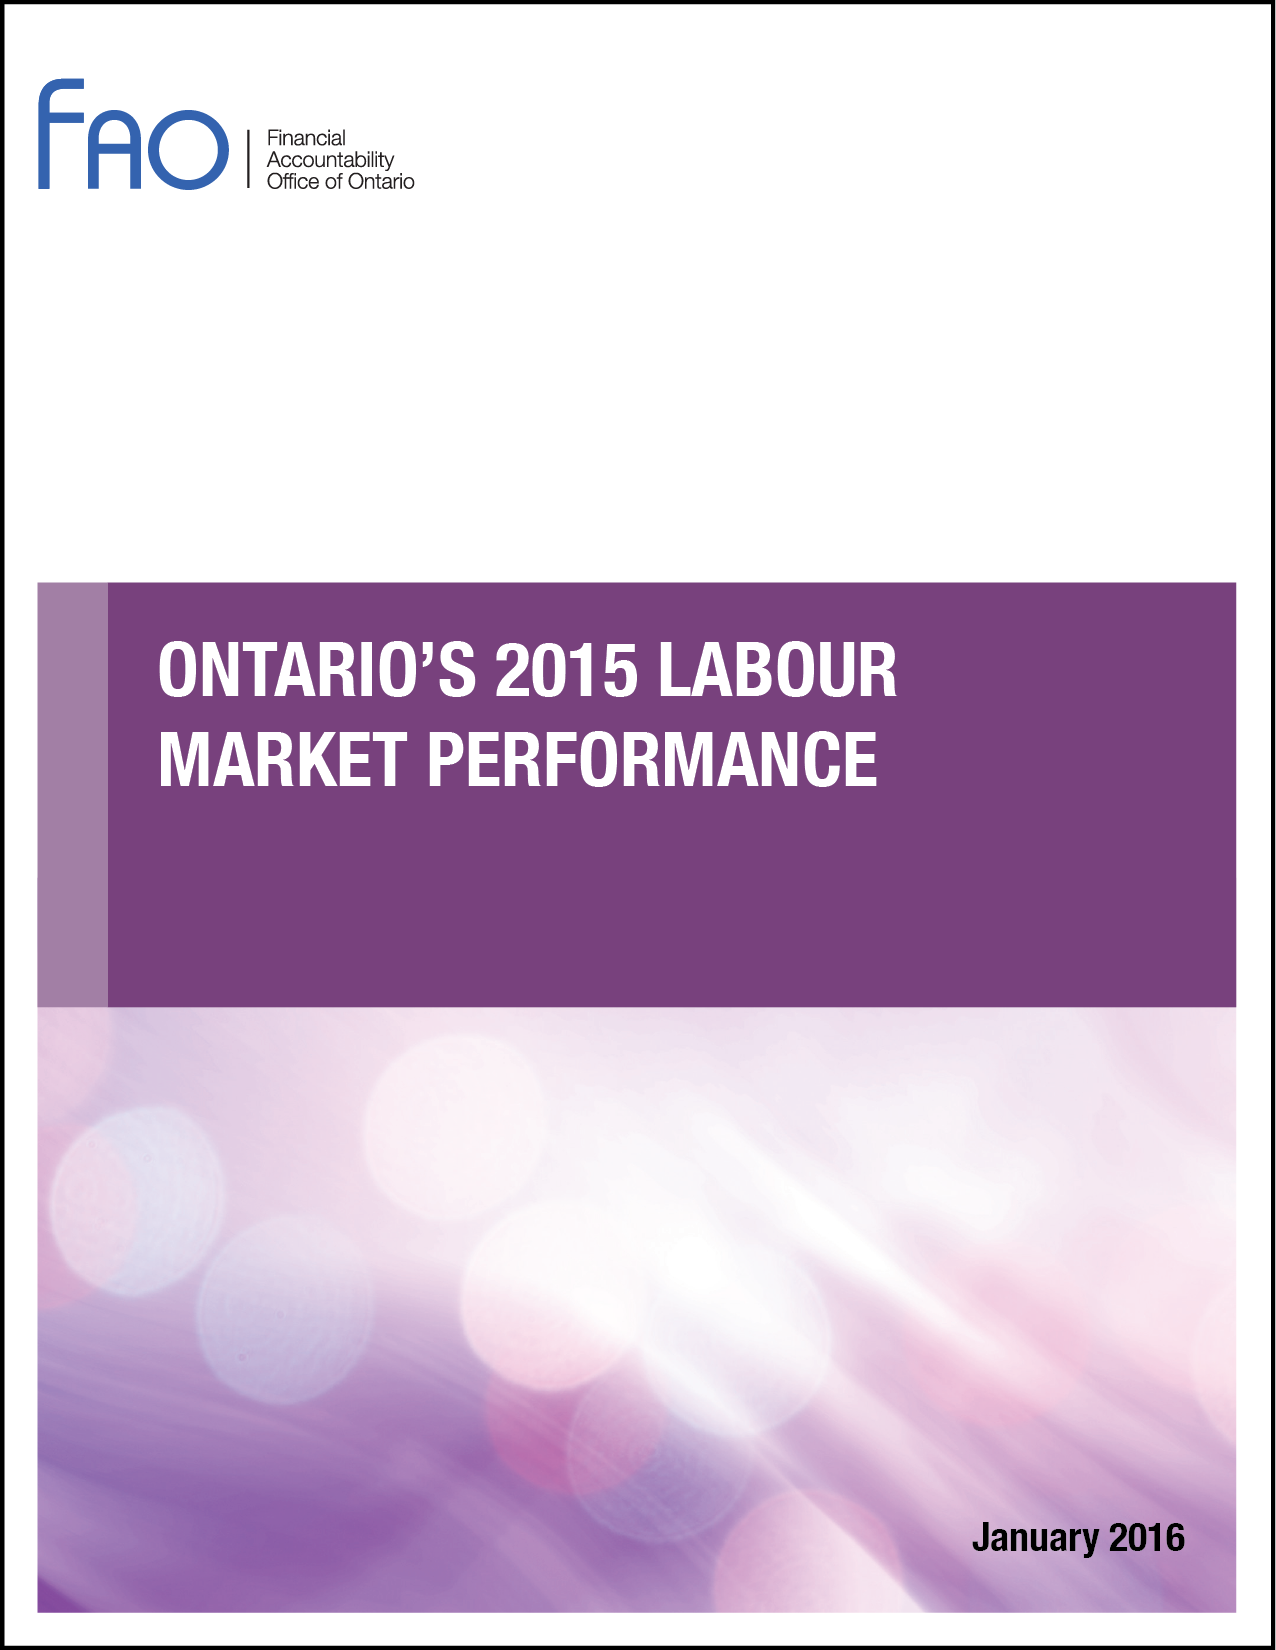 Ontario's 2015 Labour Market Performance